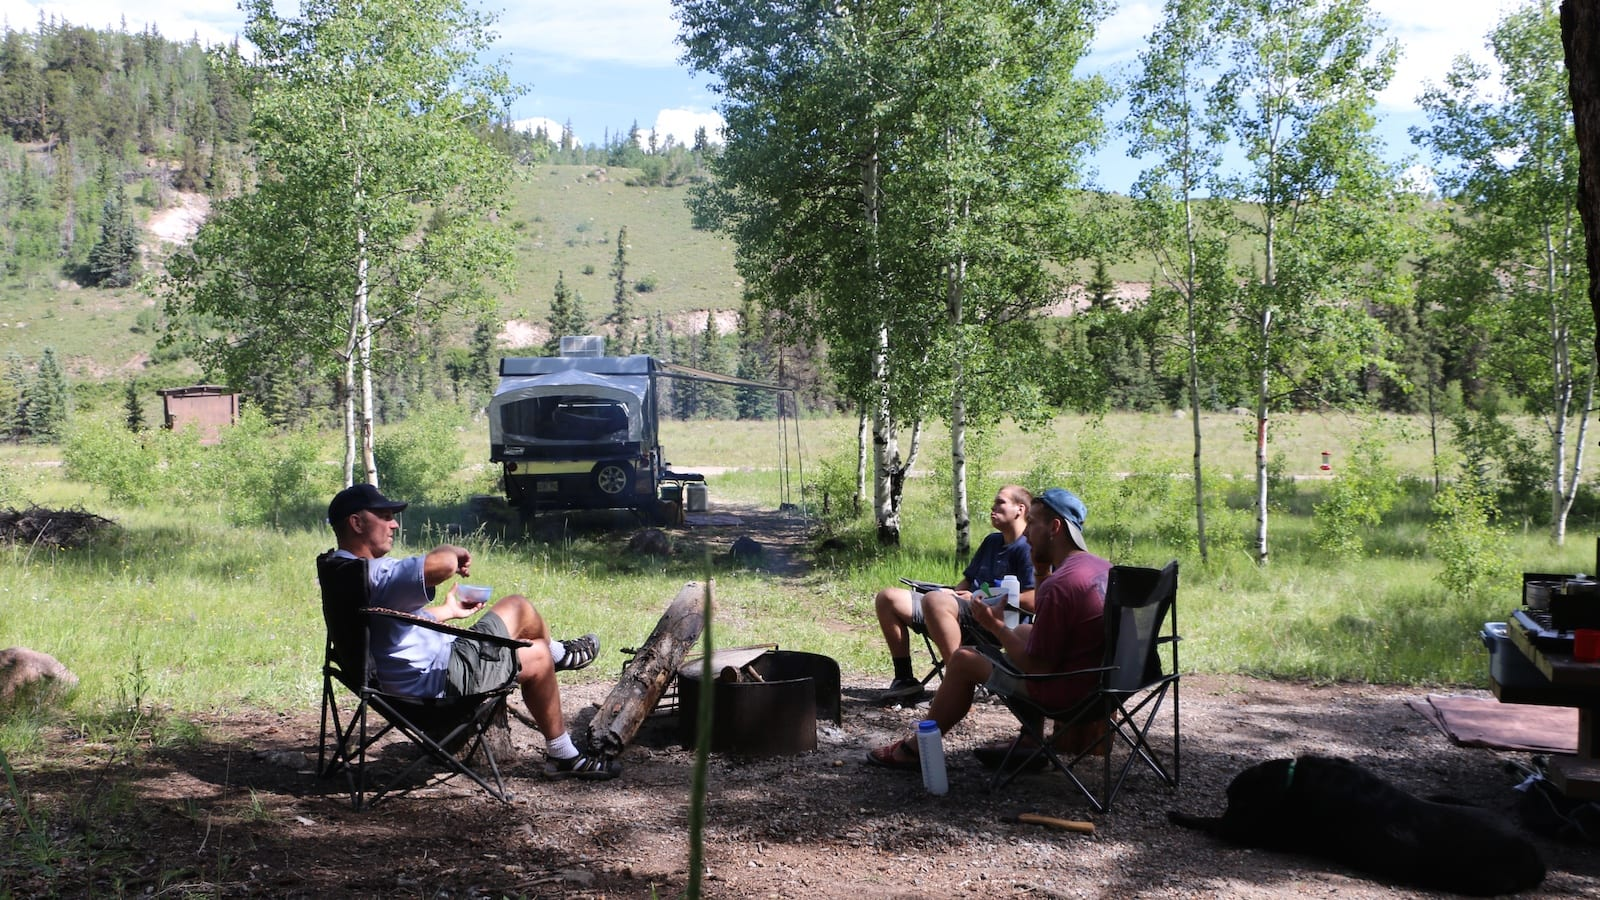 Camping near Creede CO Bristol Head Campground Fire Ring